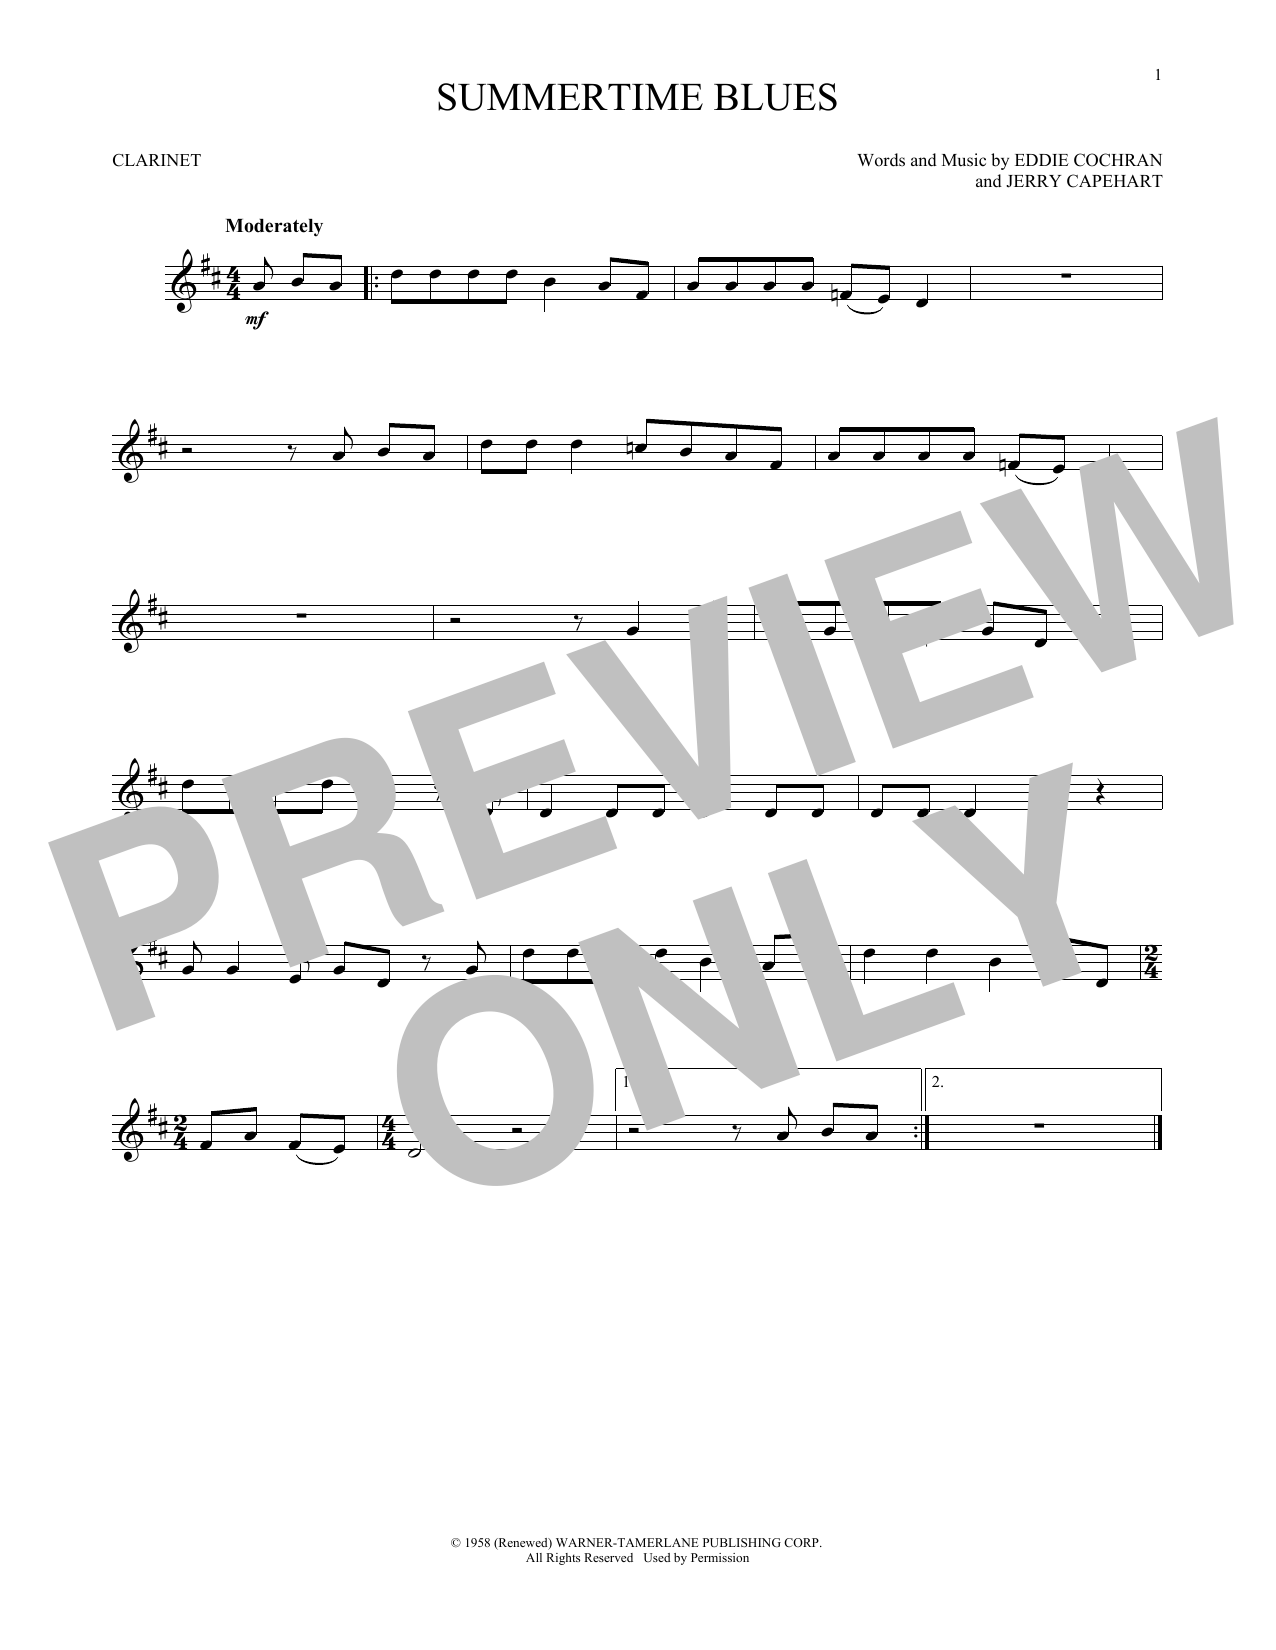 Summertime Blues (Clarinet Solo)